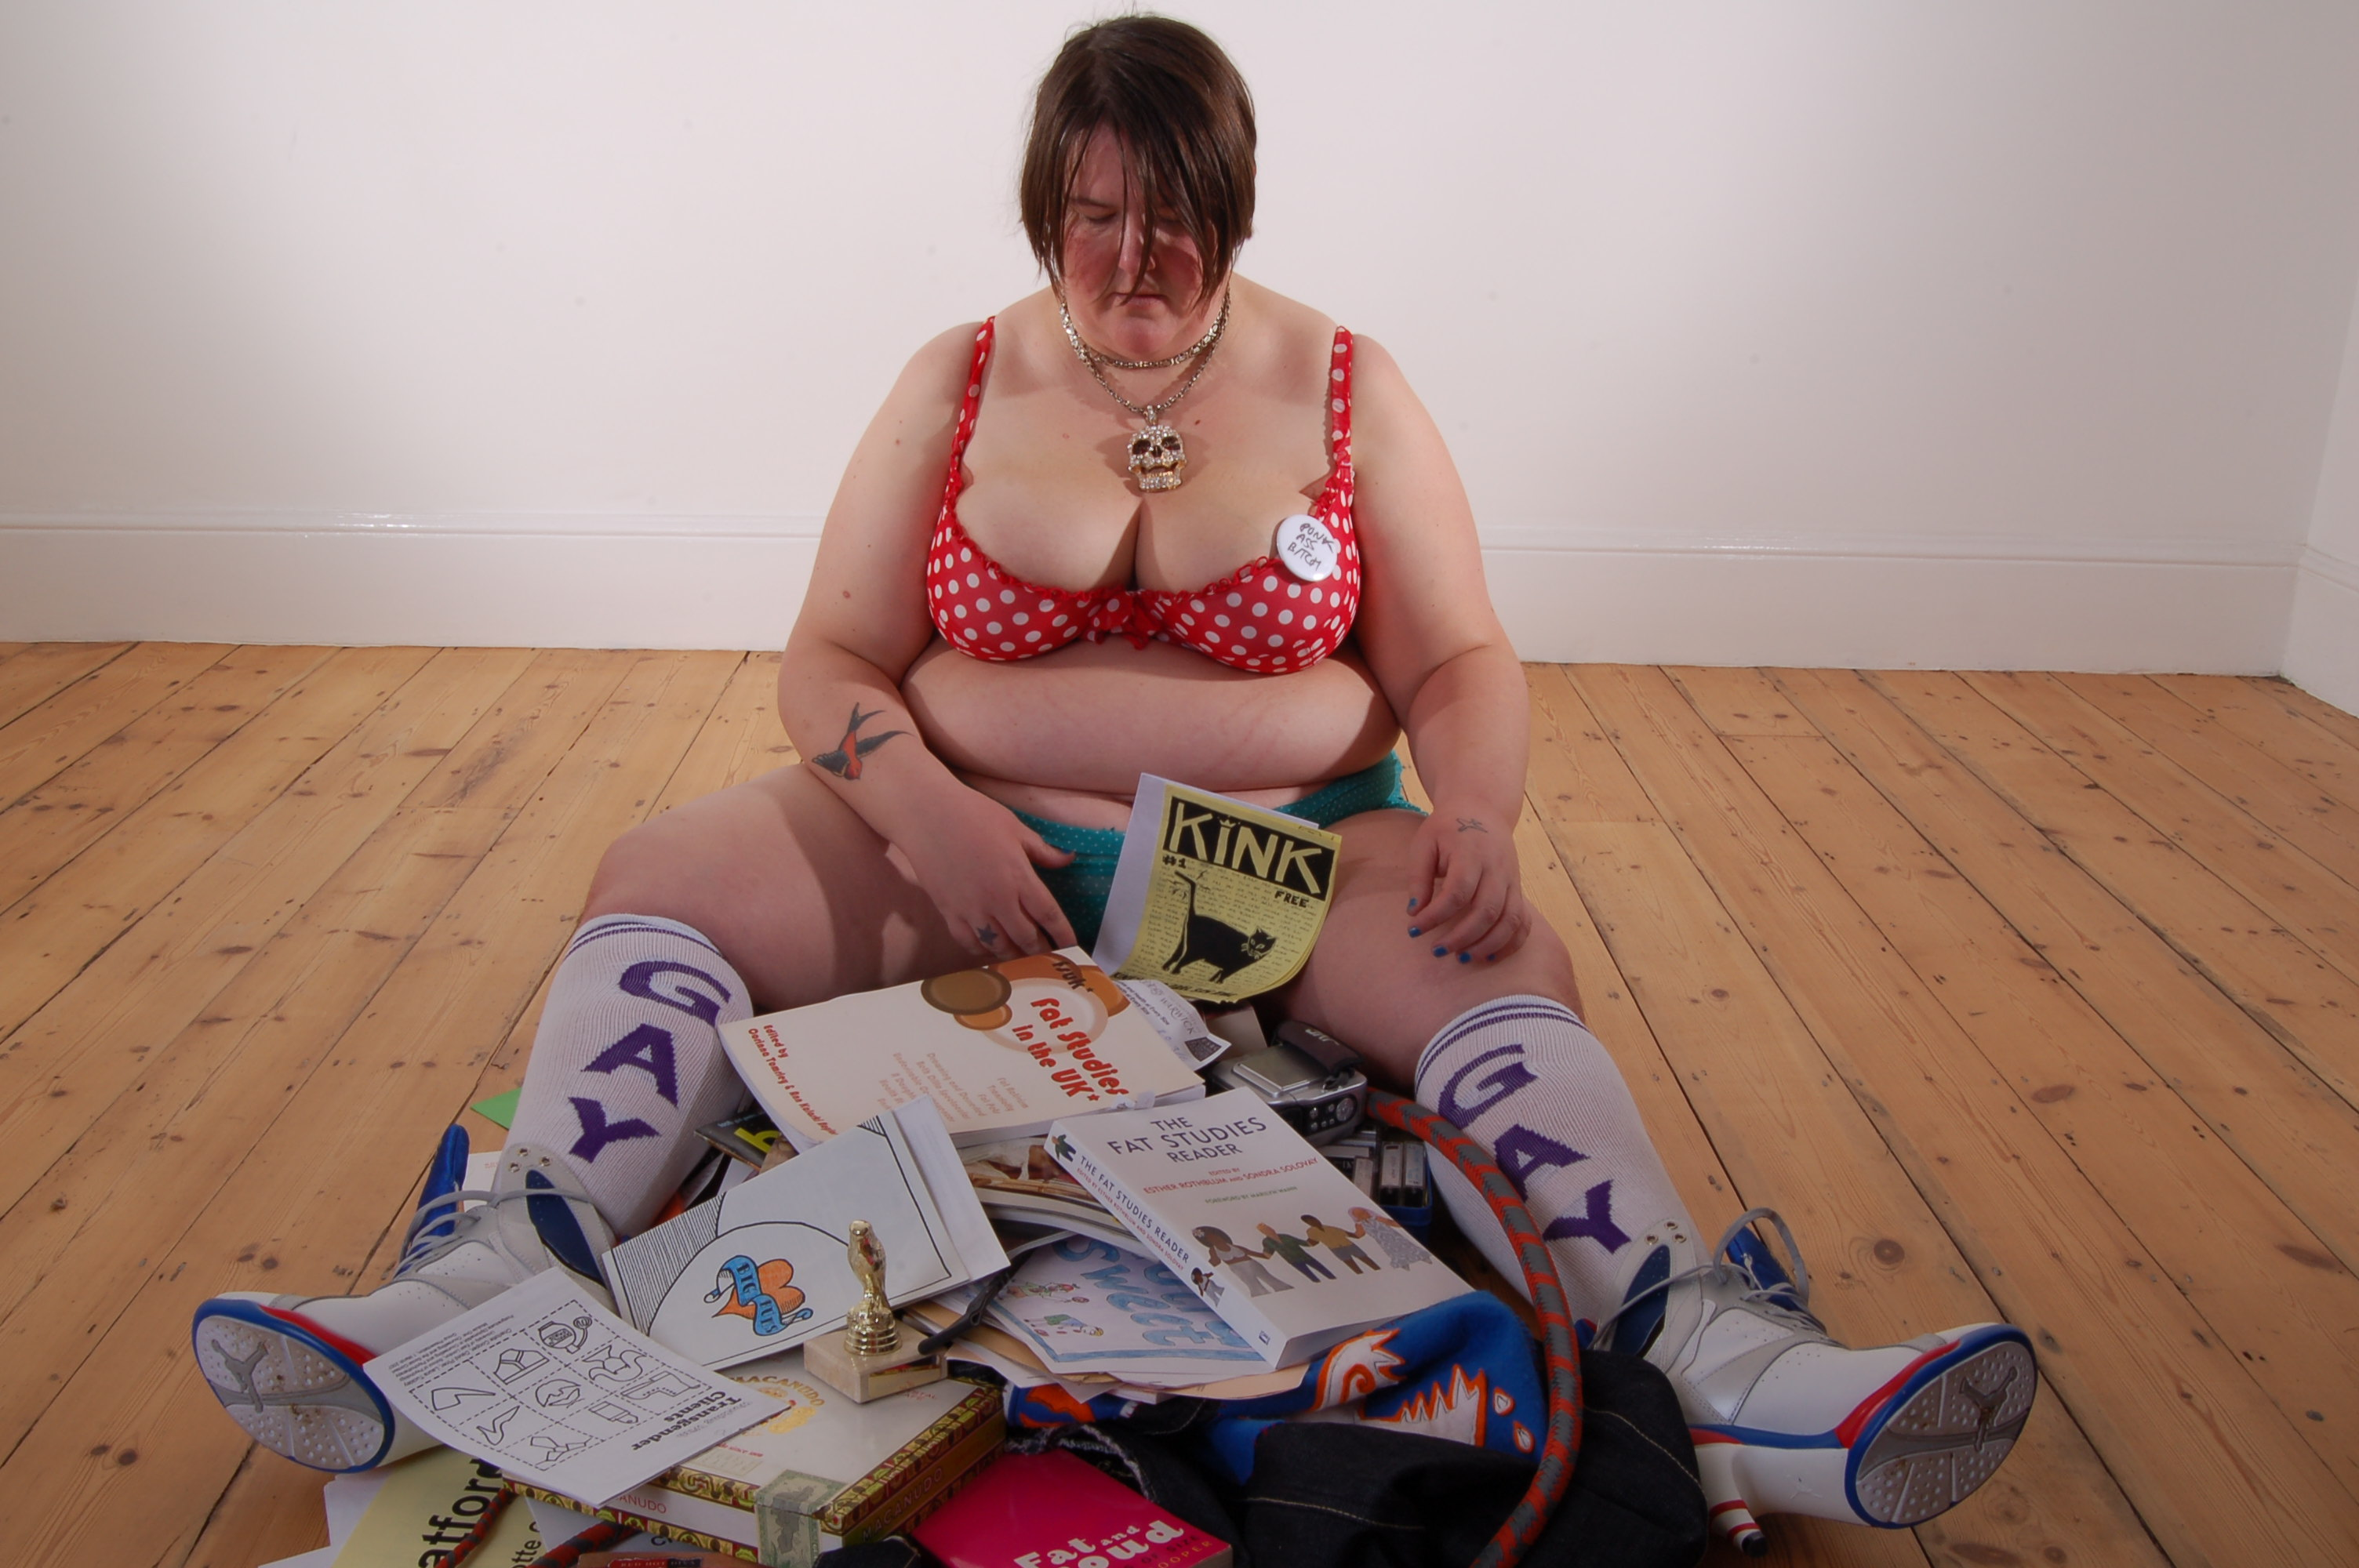 Charlotte Cooper sitting on the floor with books and magazines surrounding her